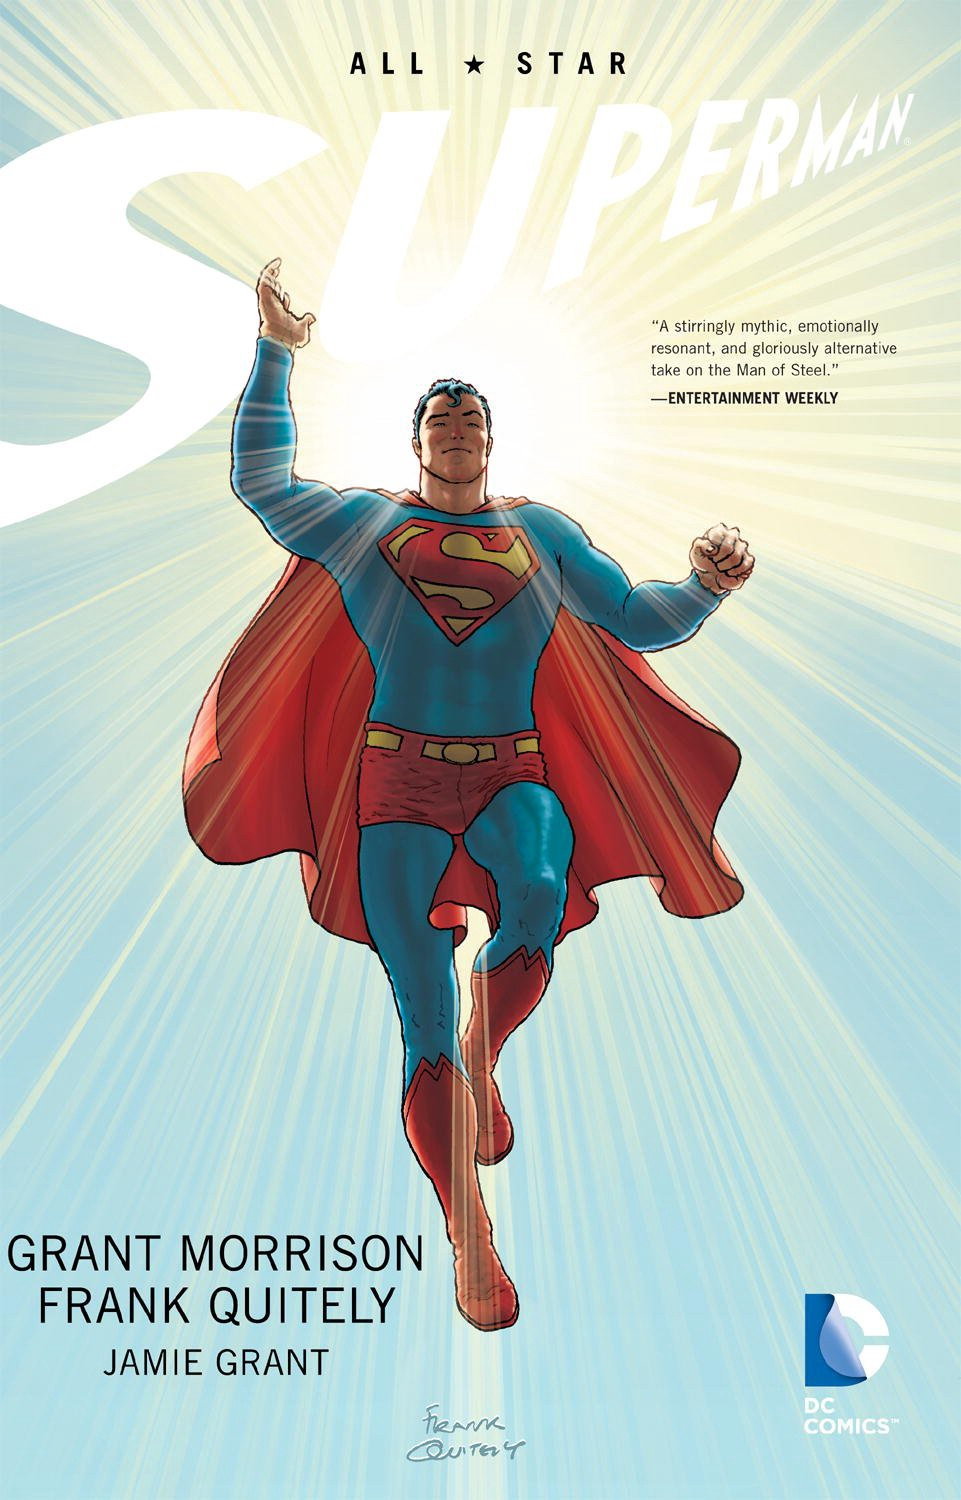 Why kids need heroic adventures the mission medium the superman arc has had the same kind of inspiring impact on millions of children and frustrated adults that the he man arc had on me buycottarizona Image collections